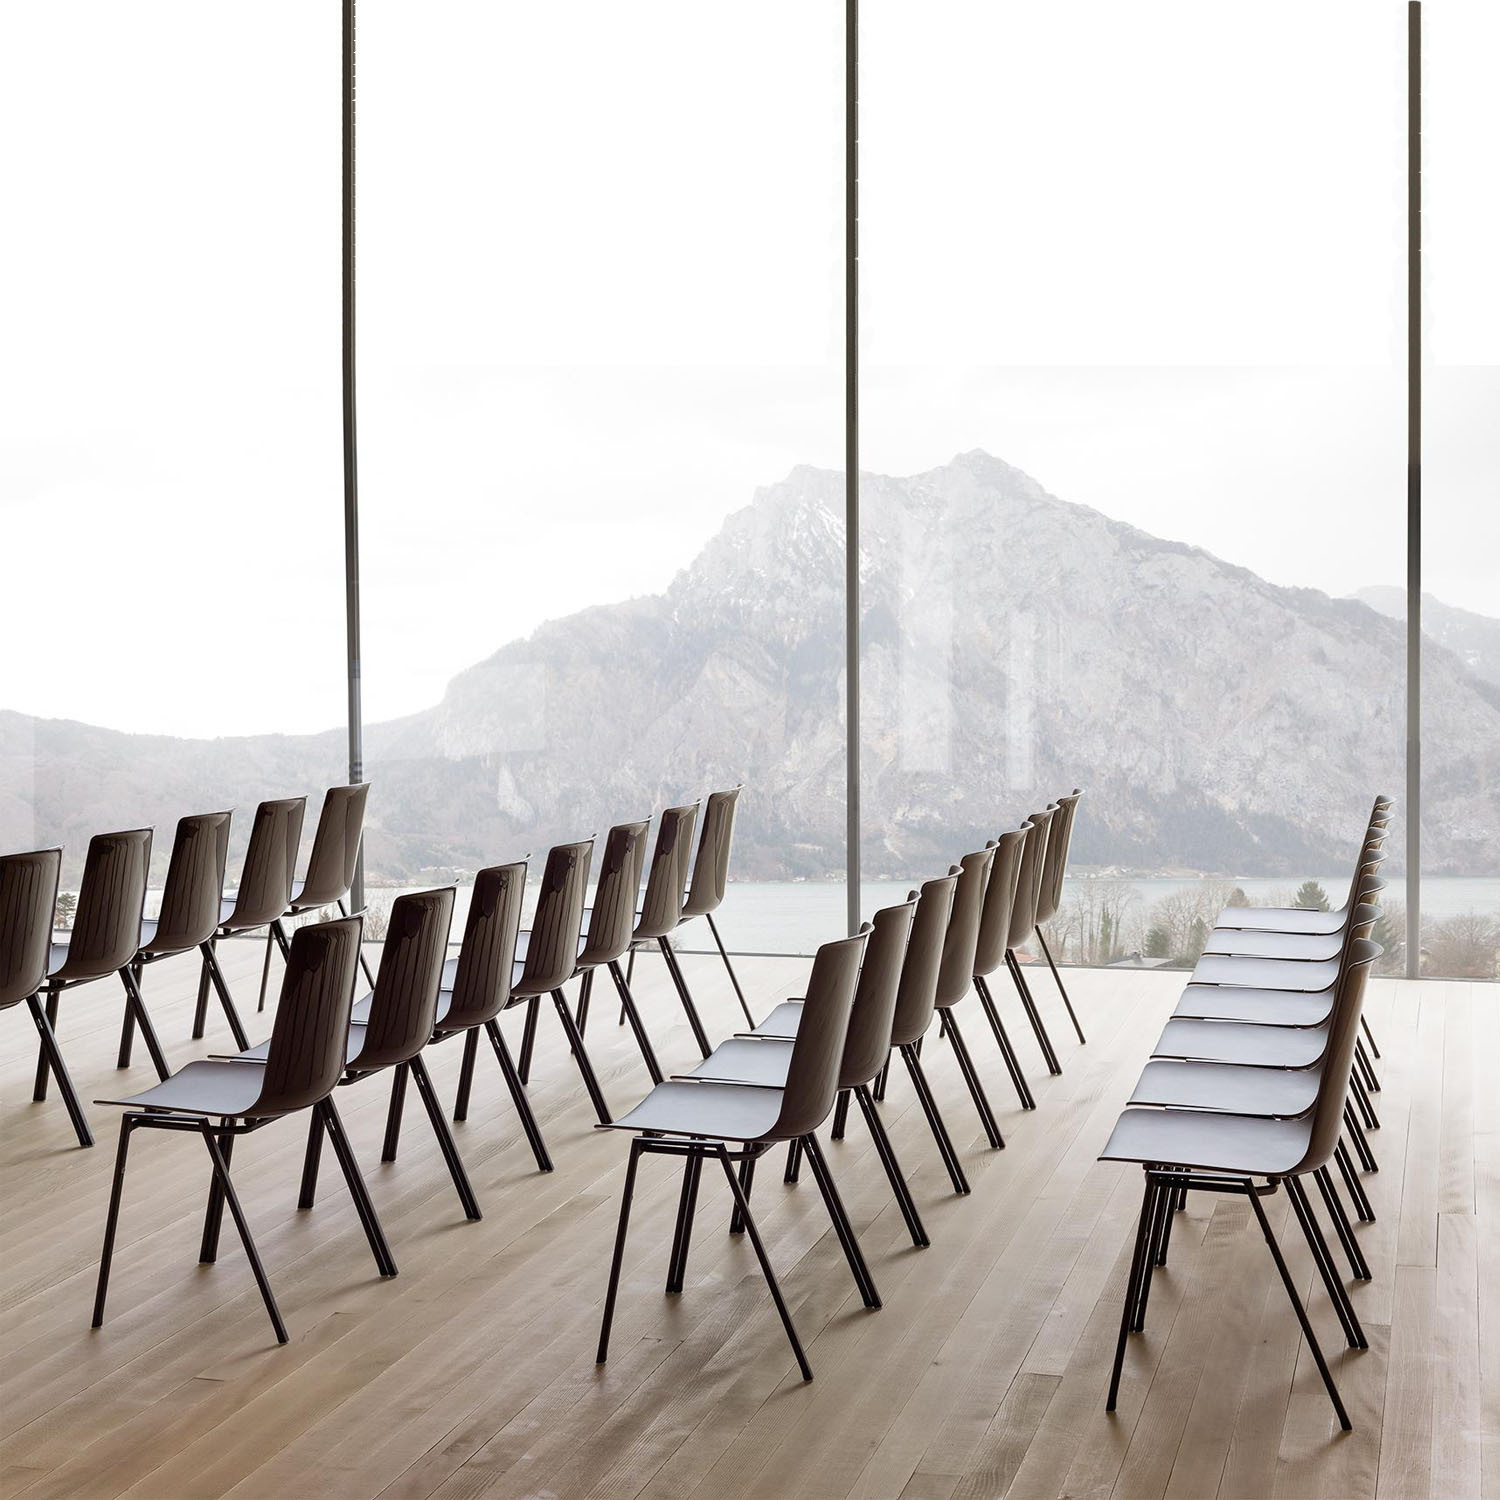 Nooi Chairs in Rows